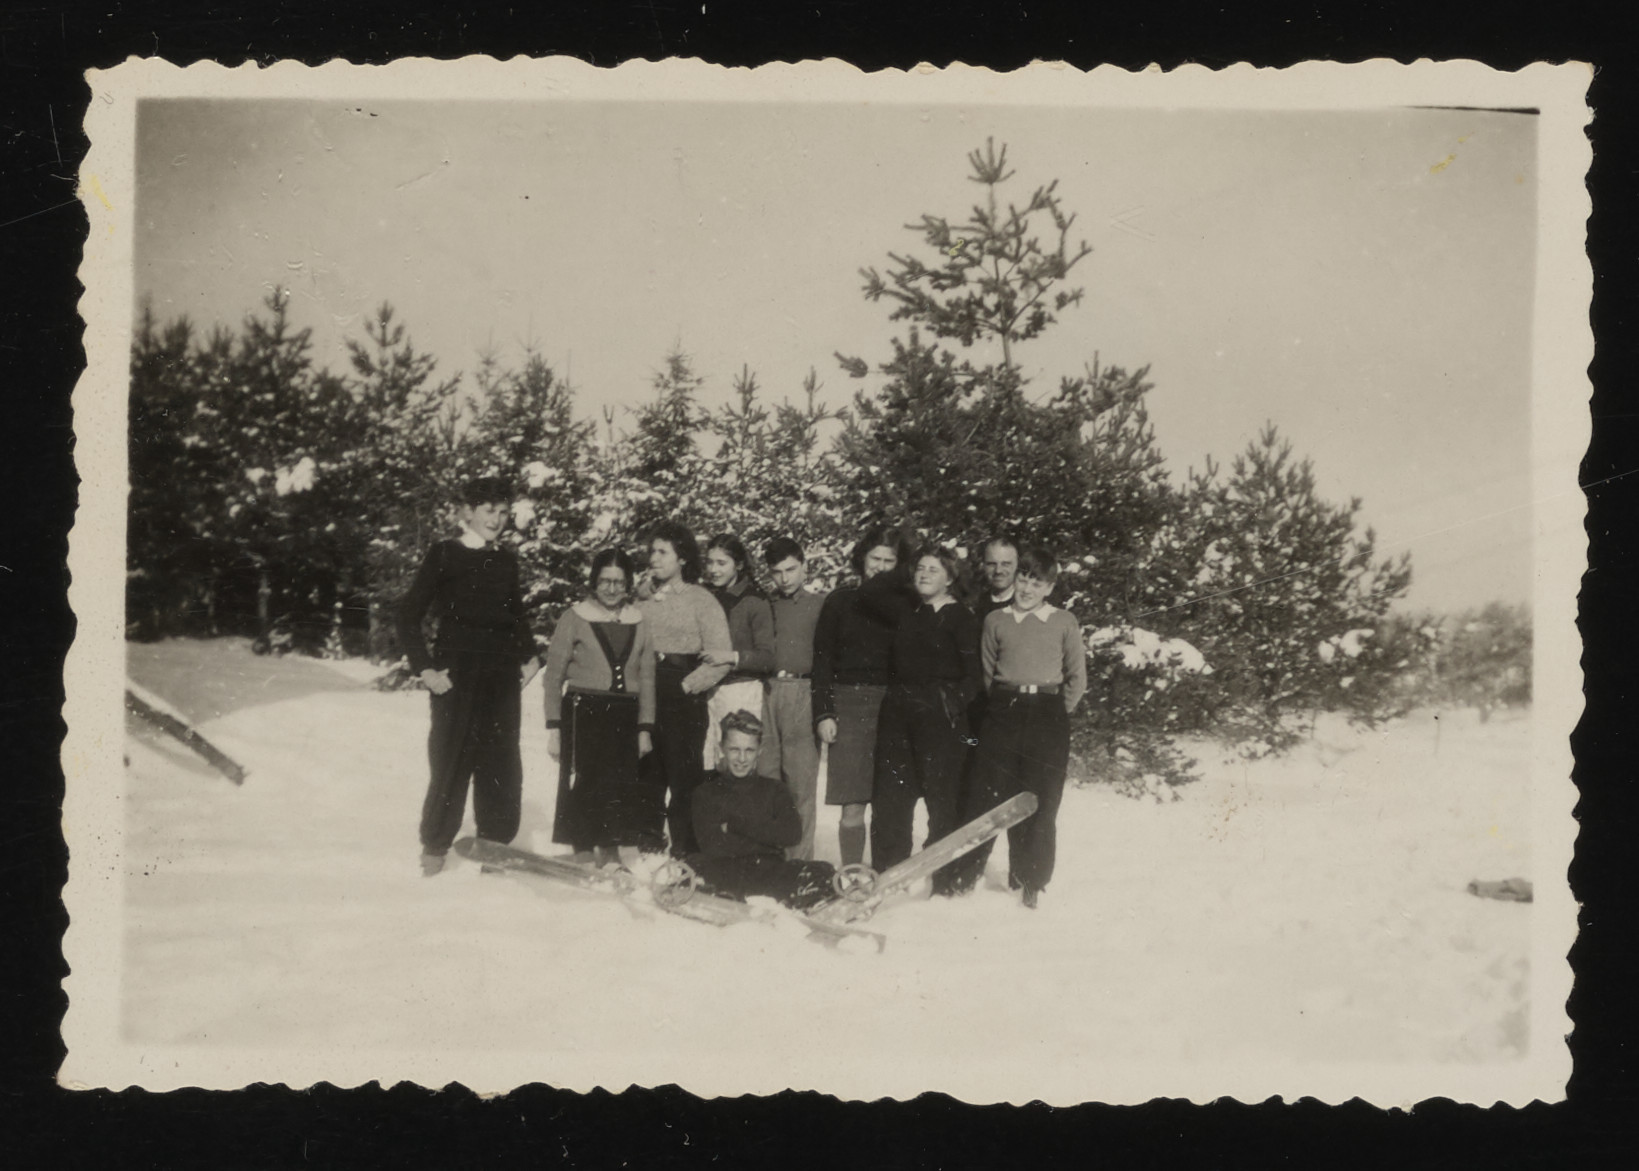 Group portrait of Jewish youth hiding in Le Chambon stand in the snow.